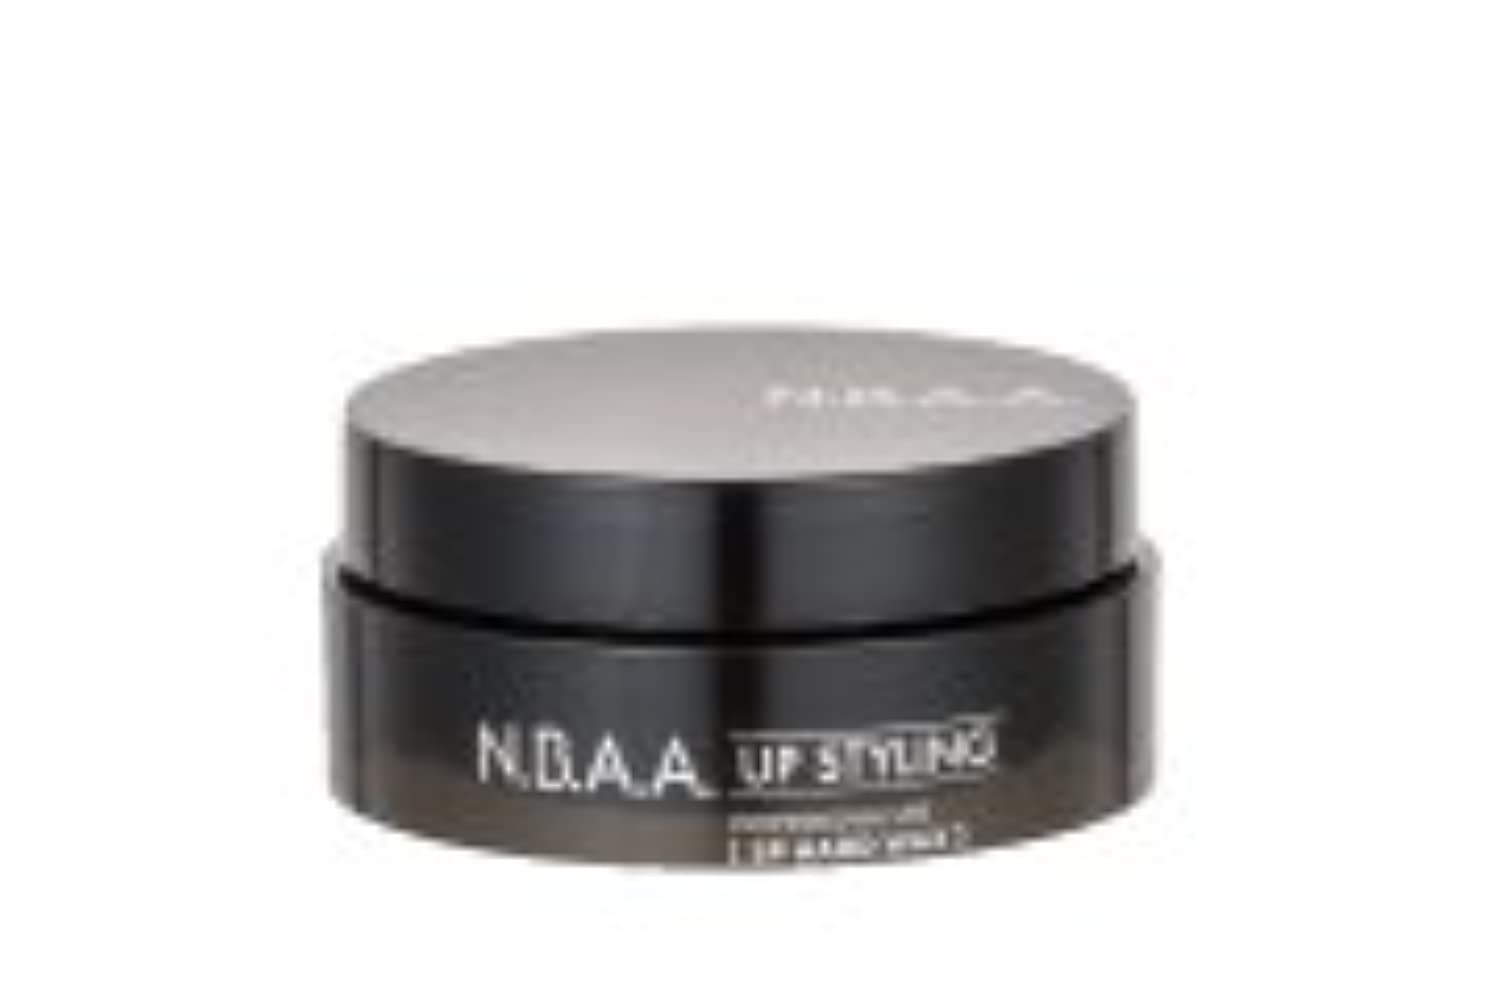 N.B.A.A.UP STYLING SP ハードワックス 75g